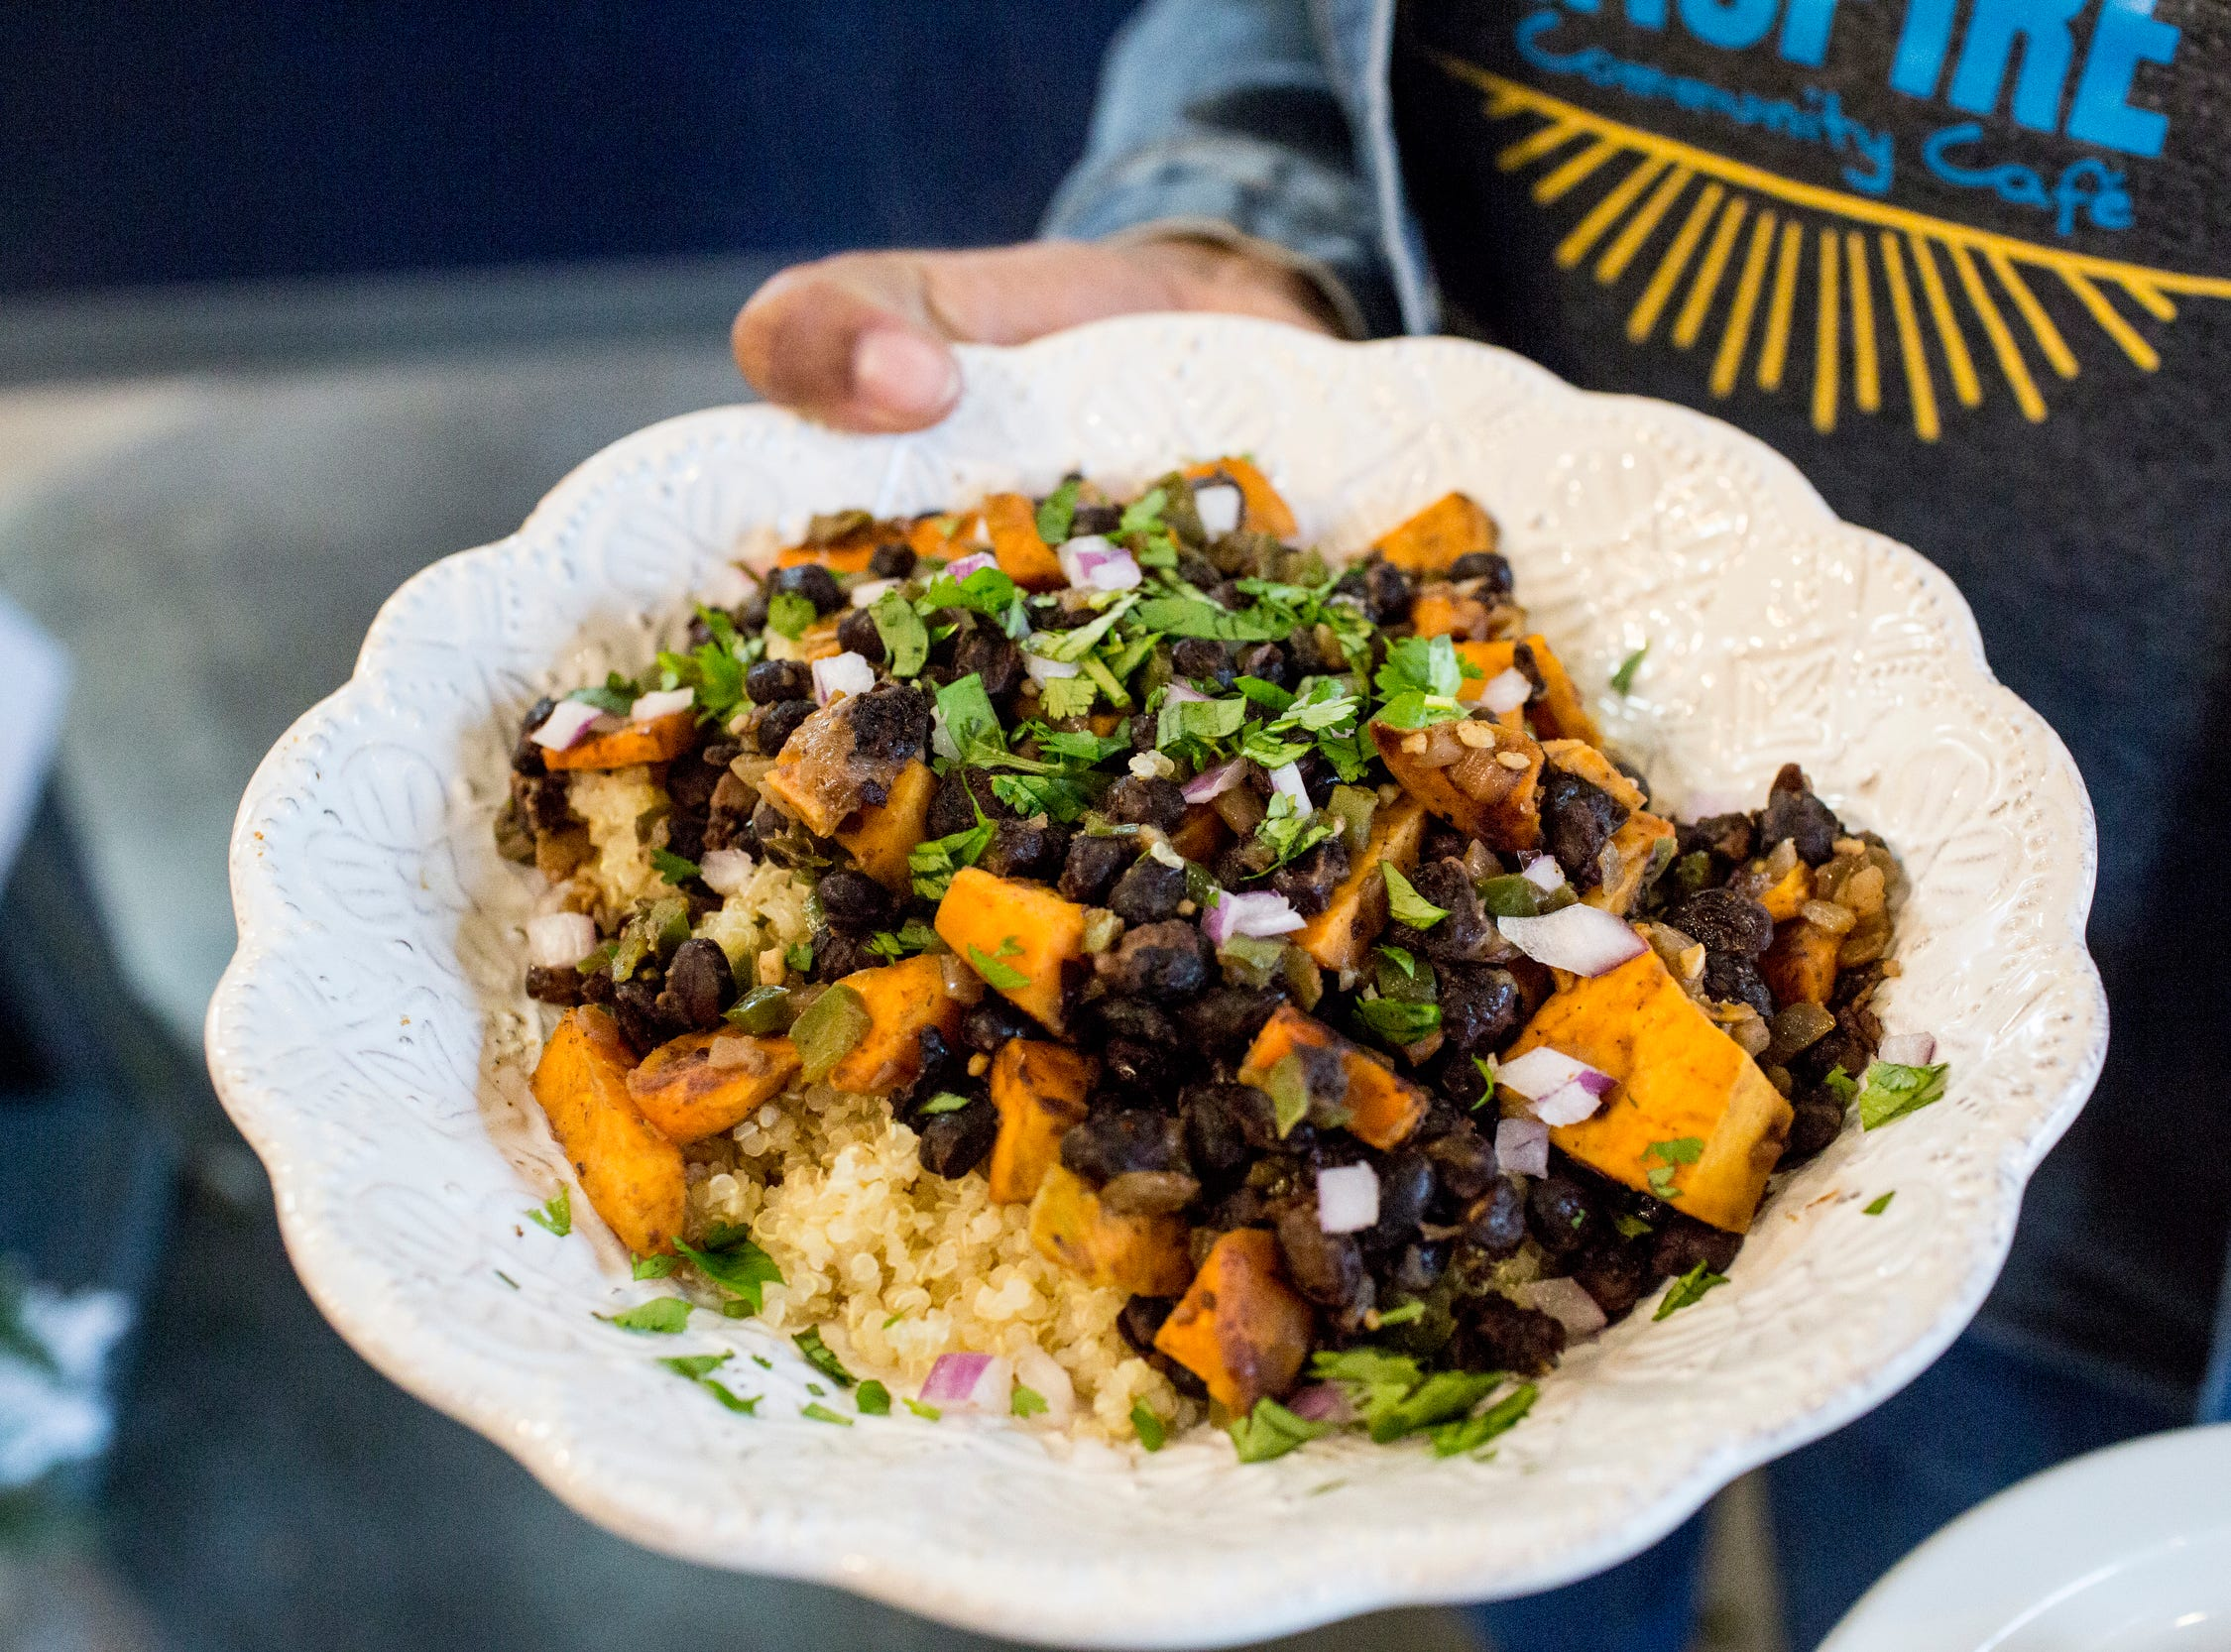 December 23 2018 - The Costa Rican black bean and roasted sweet potato quinoa bowl is seen at Inspire Community Cafeduring the final of three friends & family soft openings before the cafe opens January 4th.